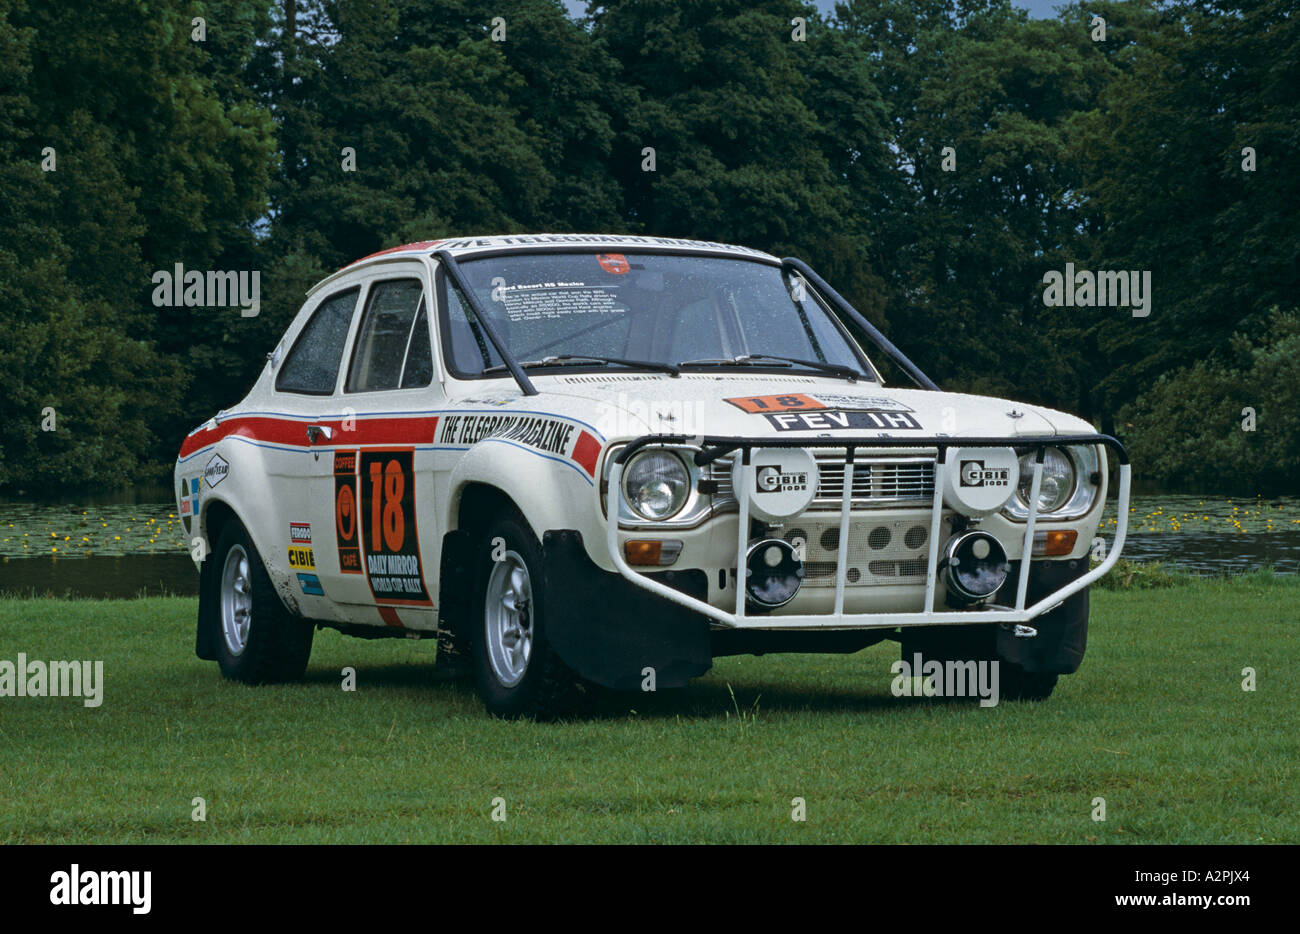 Ford Escort Mk1 Rally Car Stock Photo, Royalty Free Image: 6042659 ...